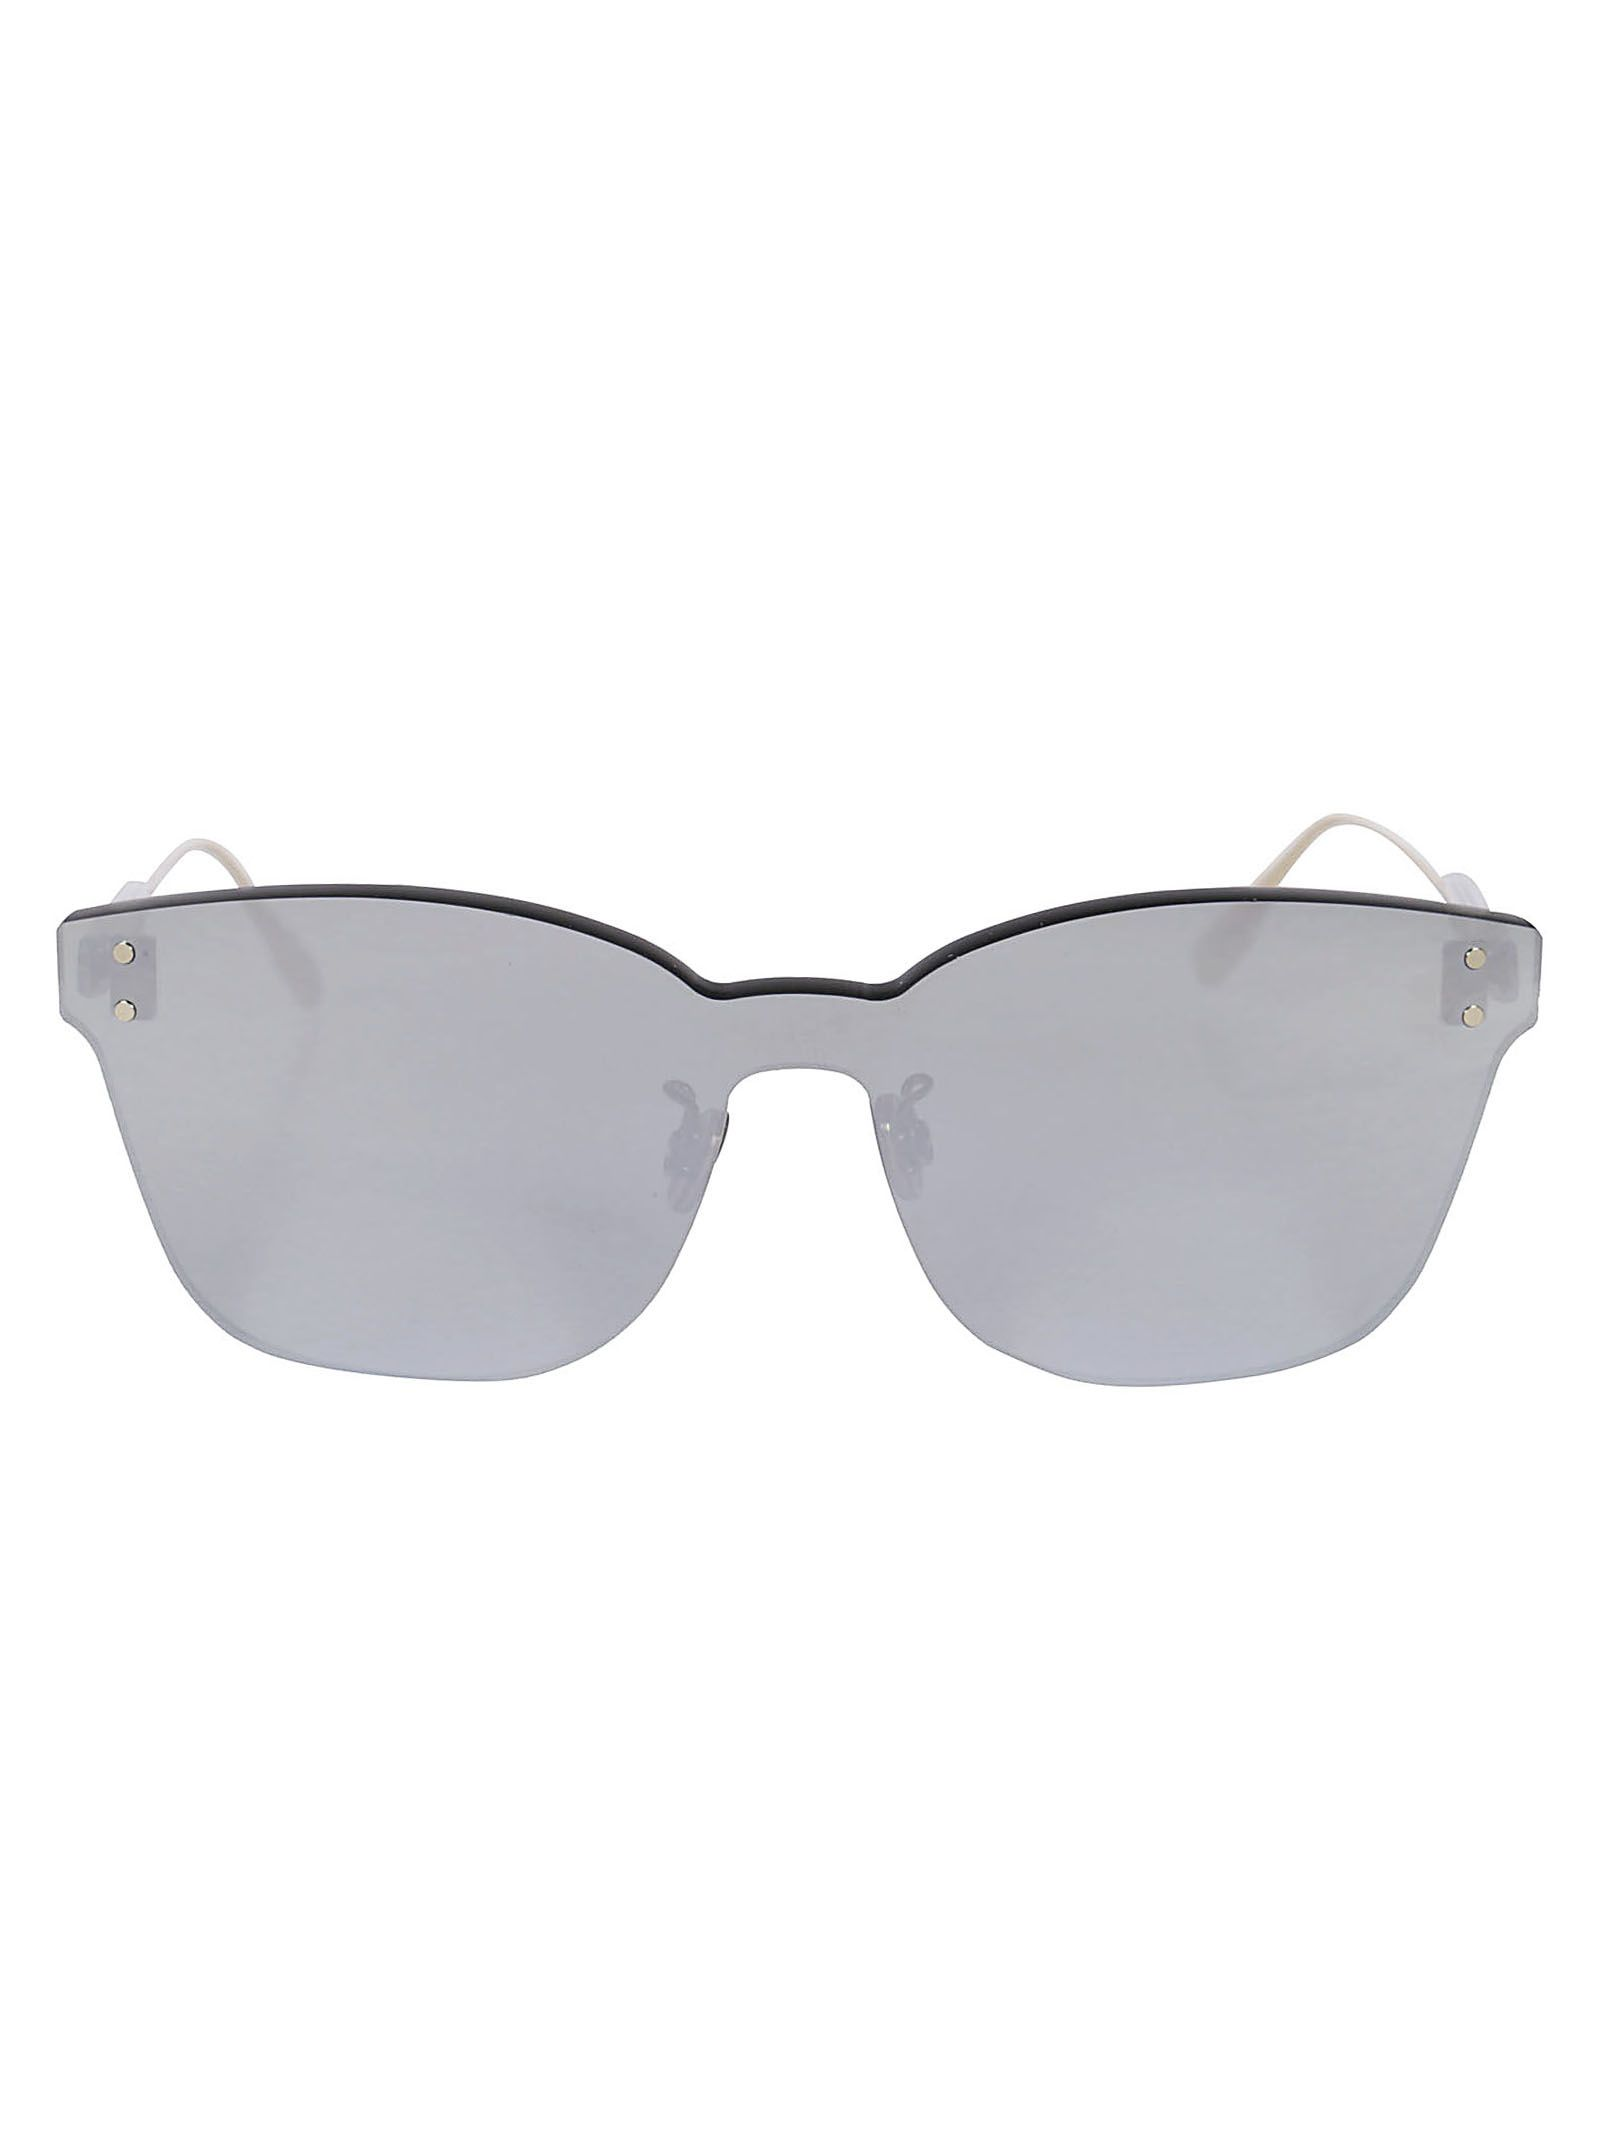 Dior Color Quake Square Frame Sunglasses